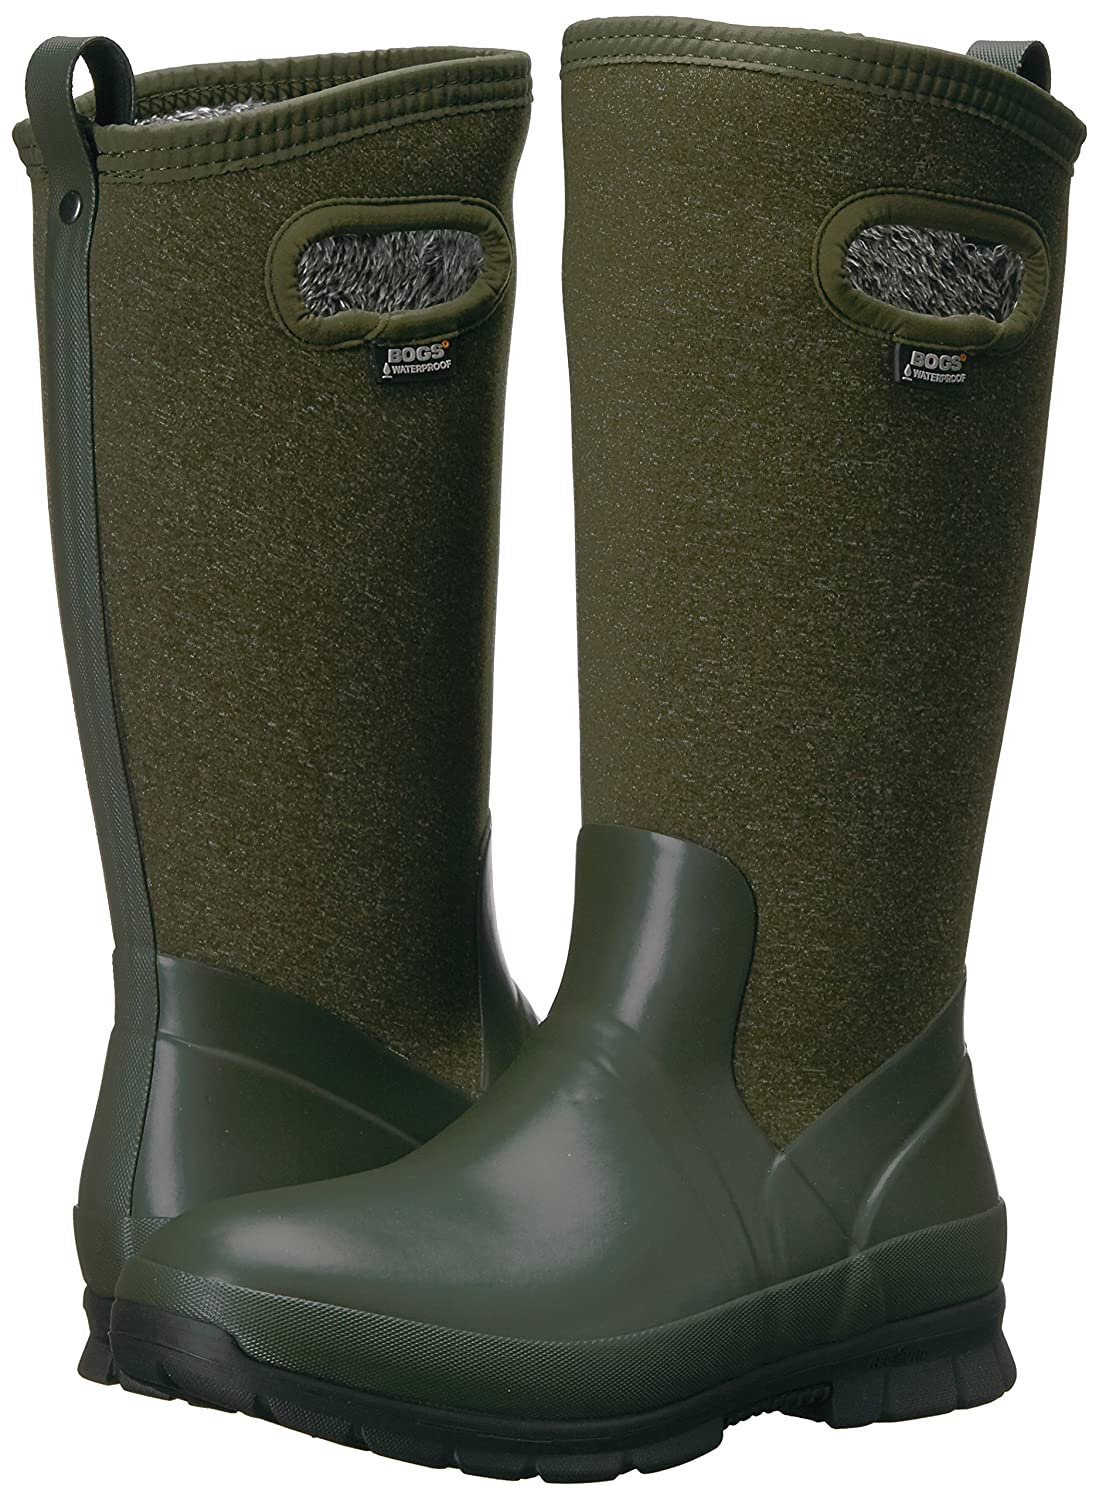 Bogs Women's Crandall Tall Snow Boot B01MSAQYIR 6 B(M) US|Dark Green/Multi